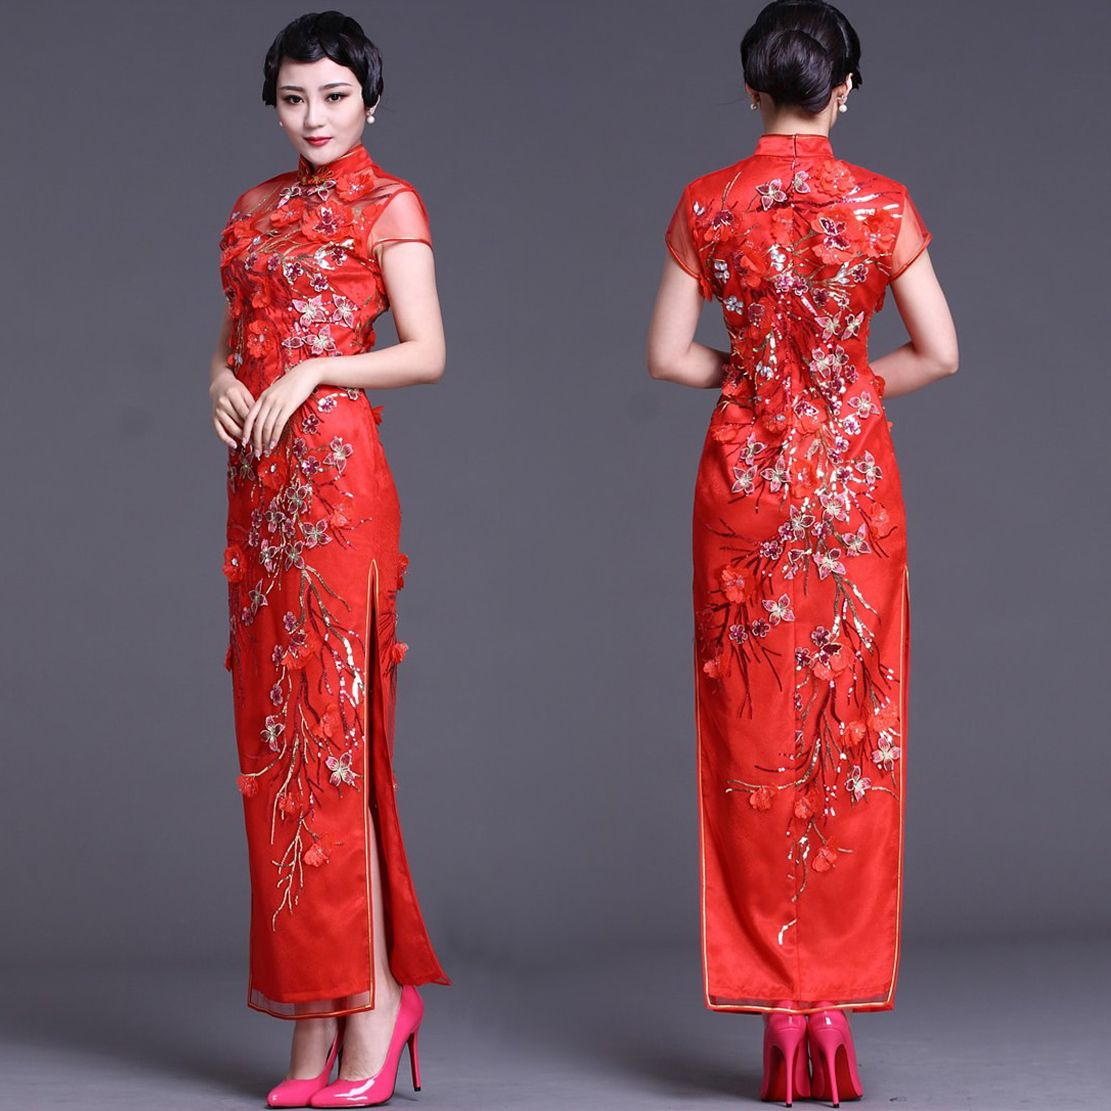 Embroidered red floral gauze qipao traditional chinese for Chinese style wedding dress